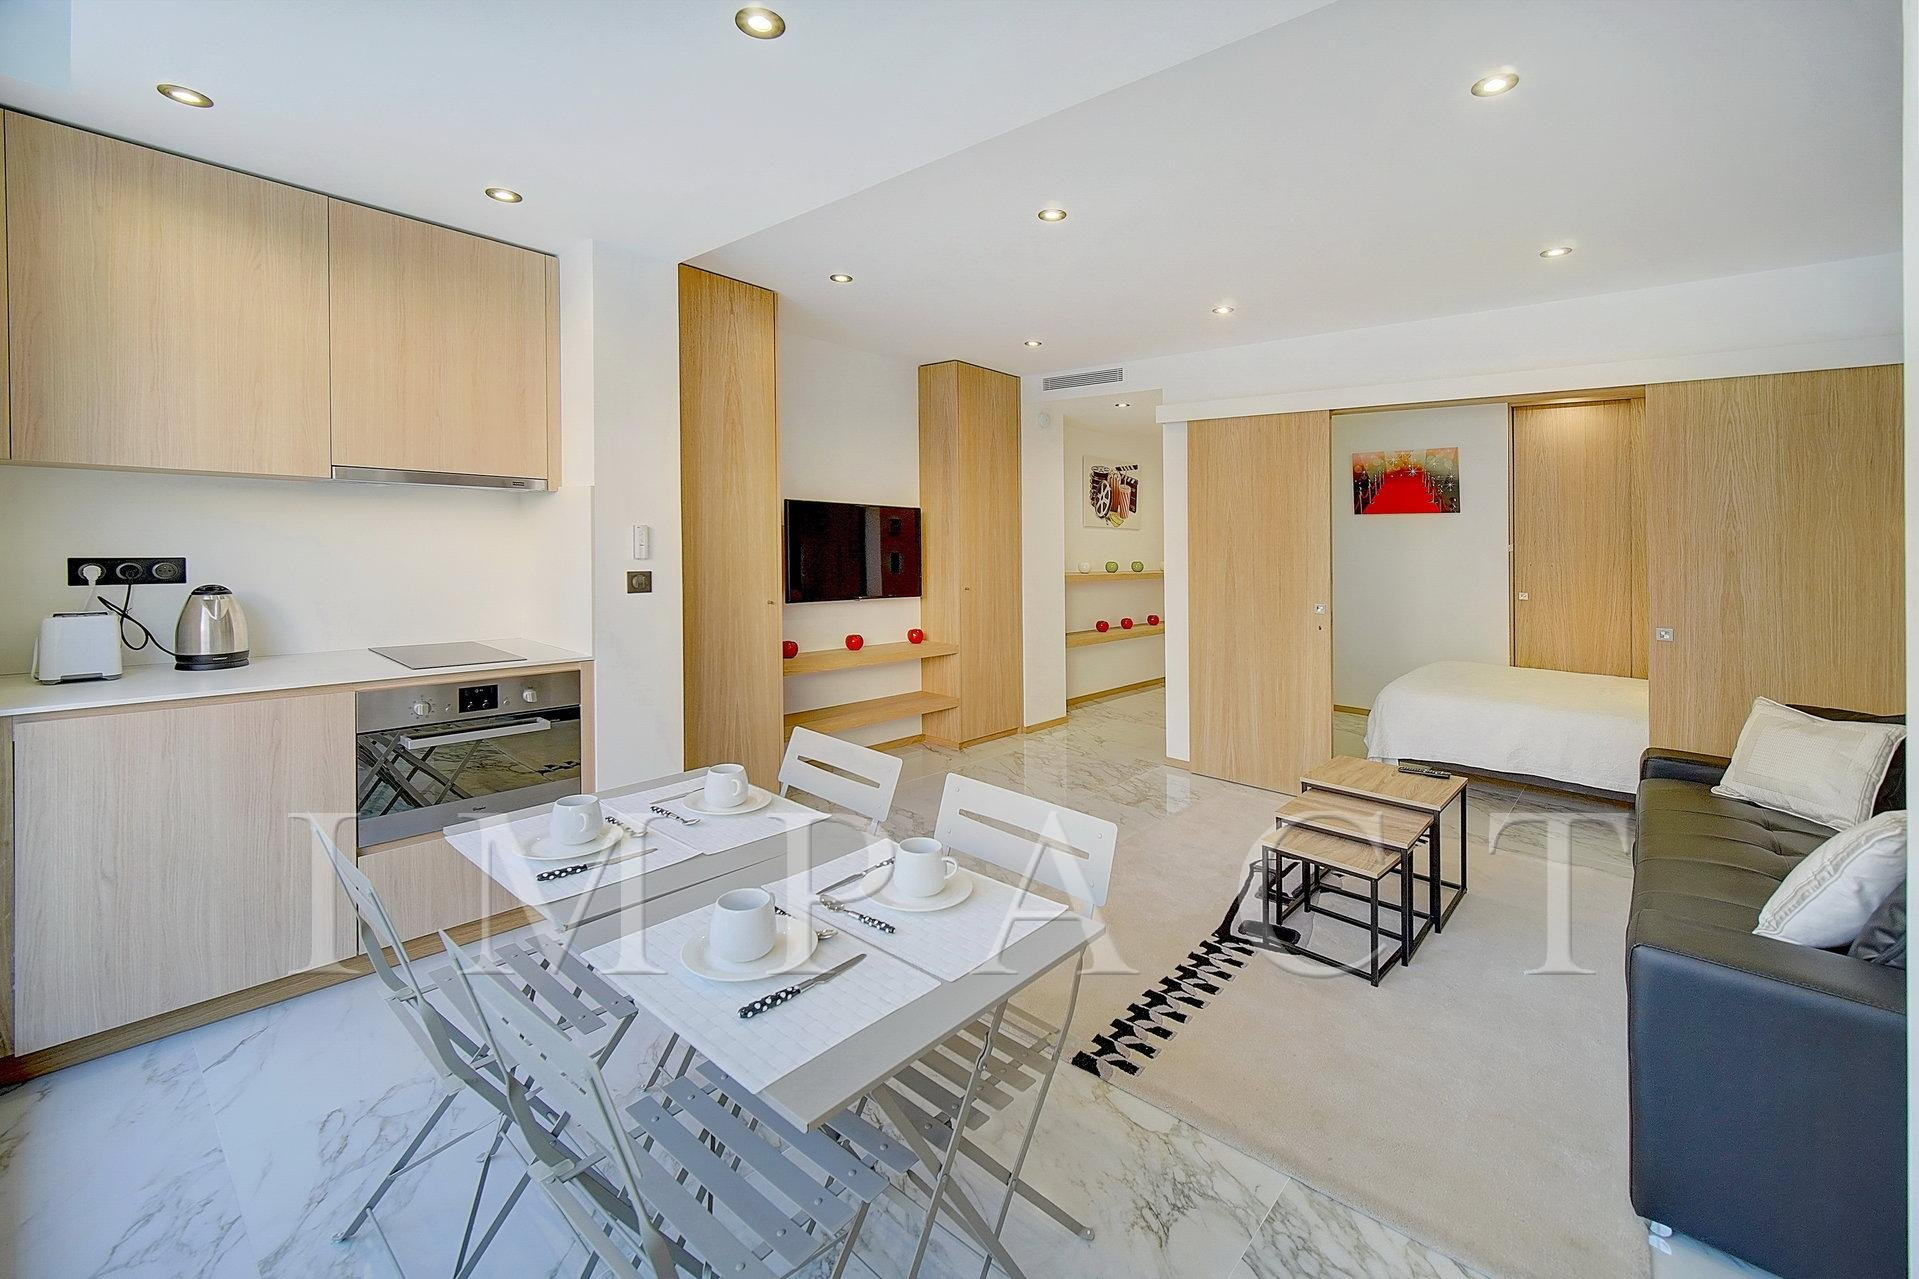 New 1 bedroom apartment to rent , Cannes Croistette